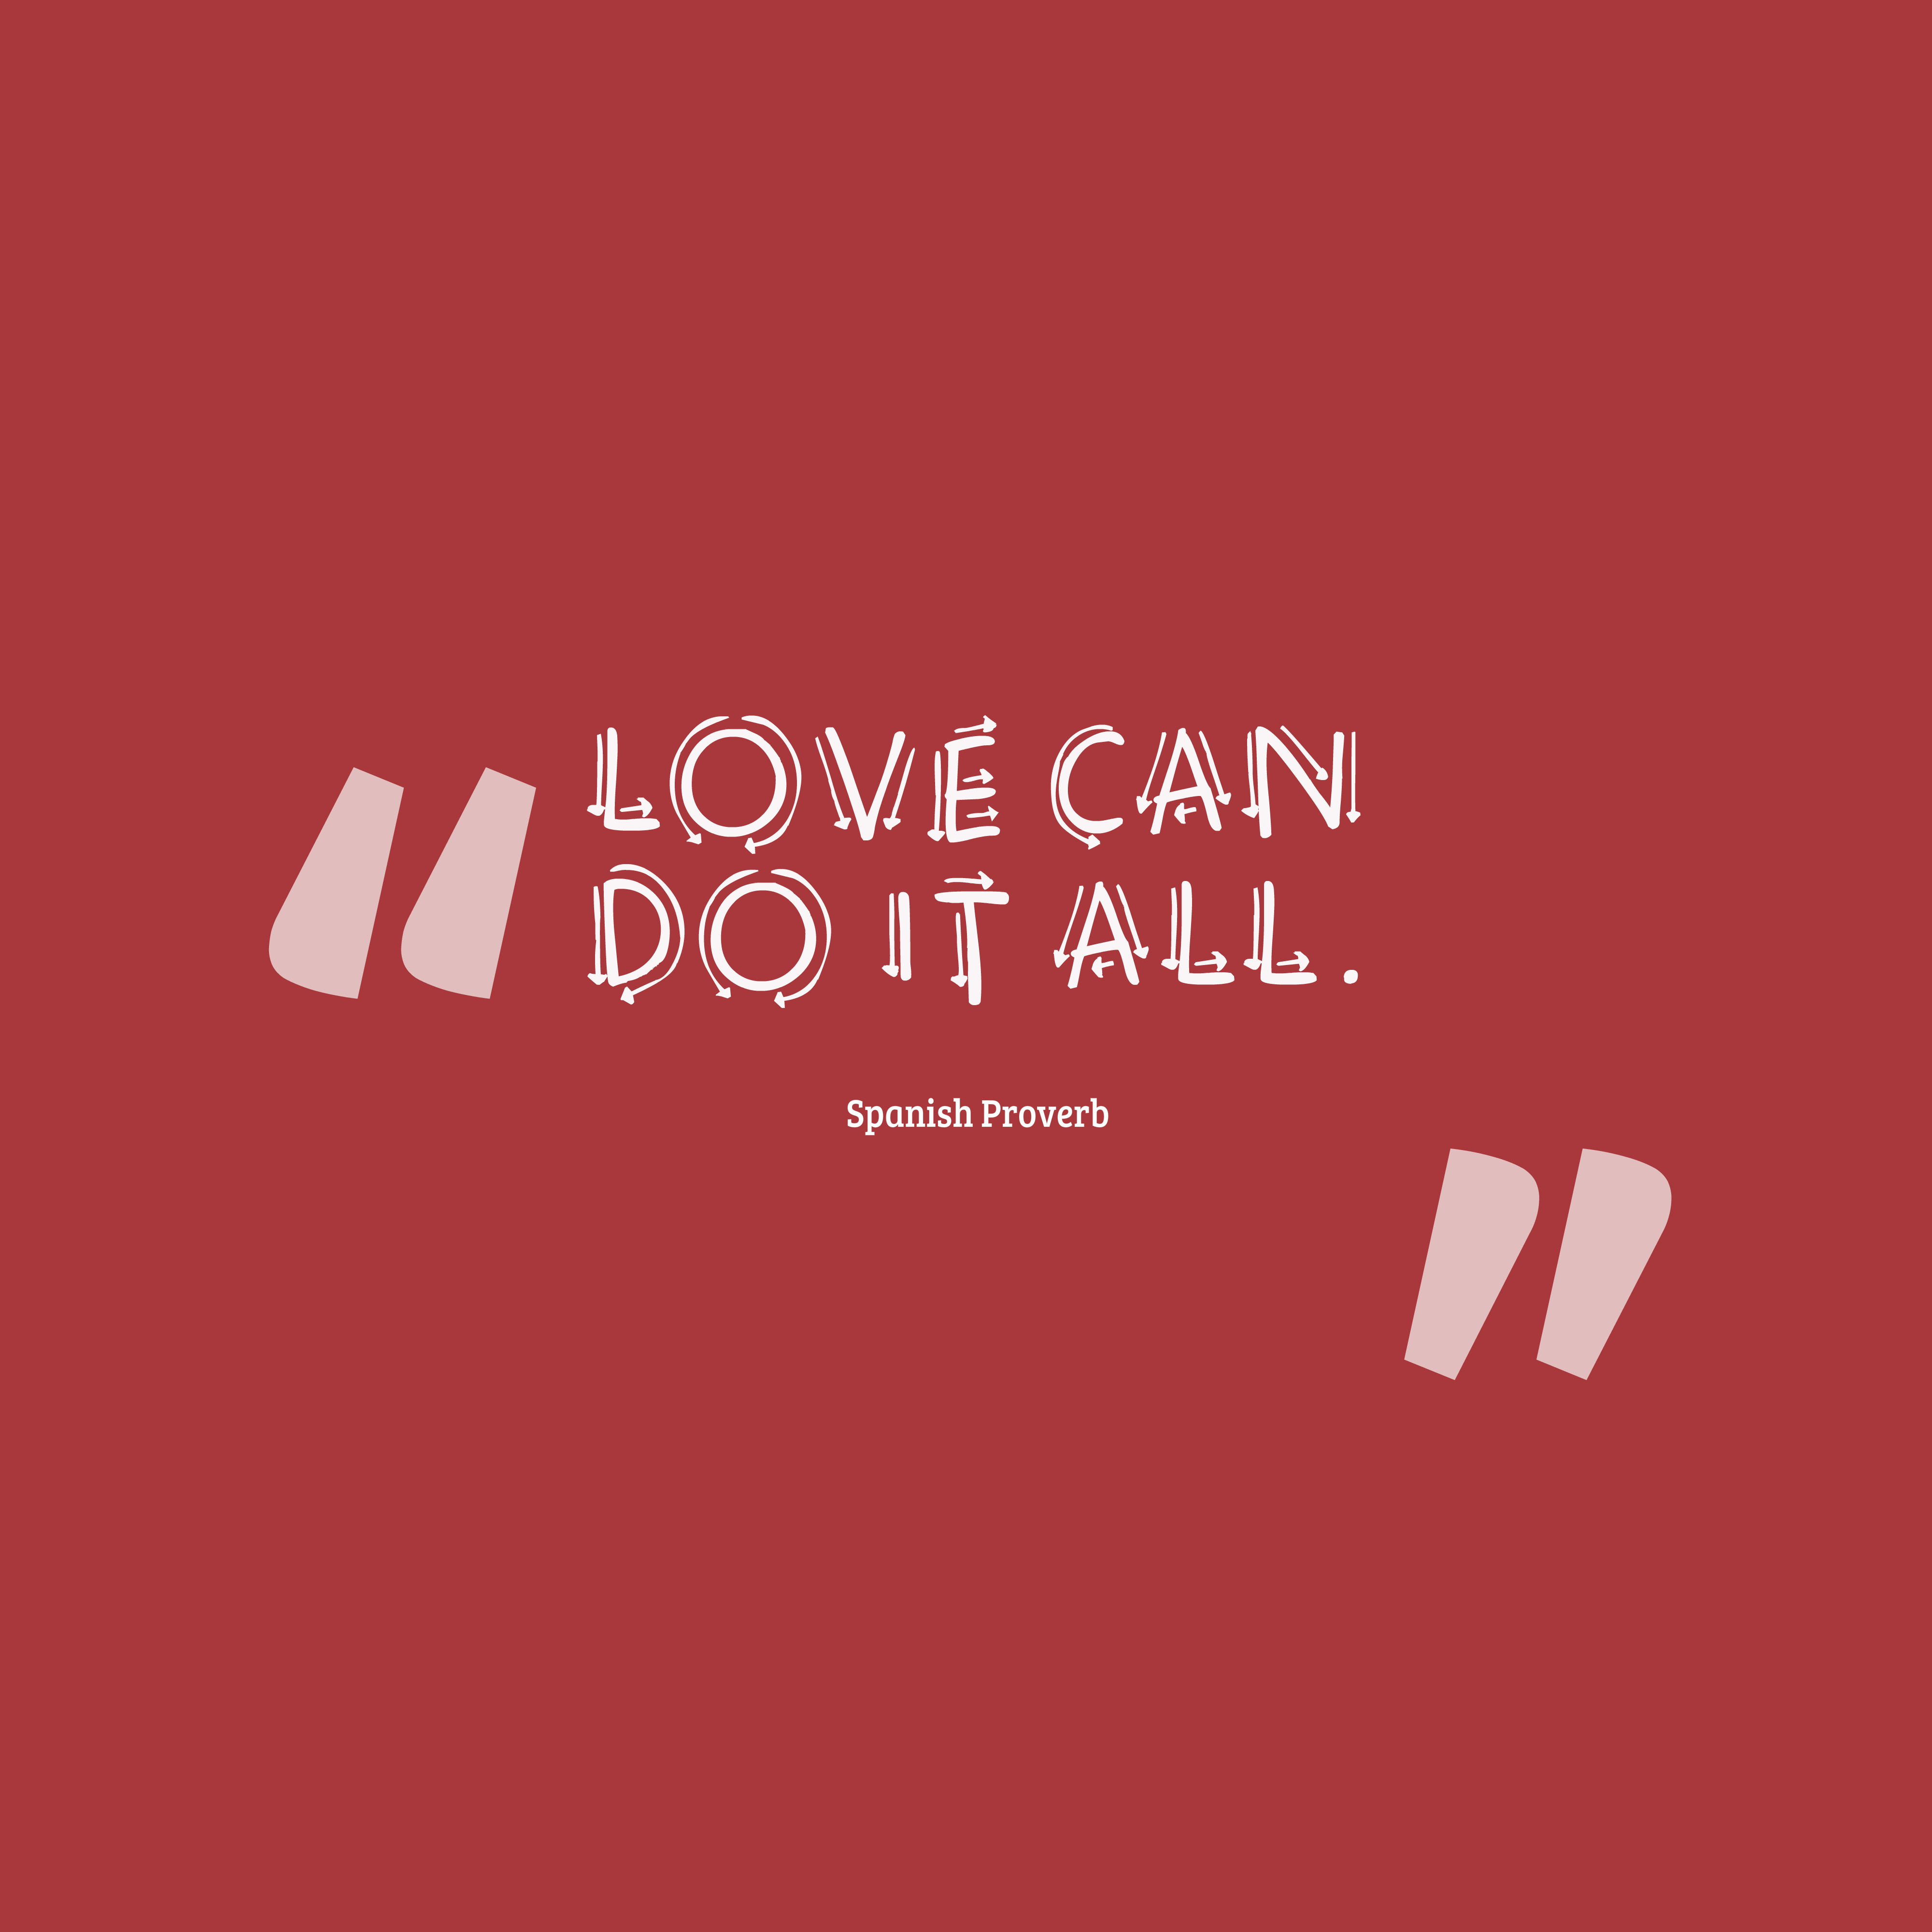 Quotes image of Love can do it all.